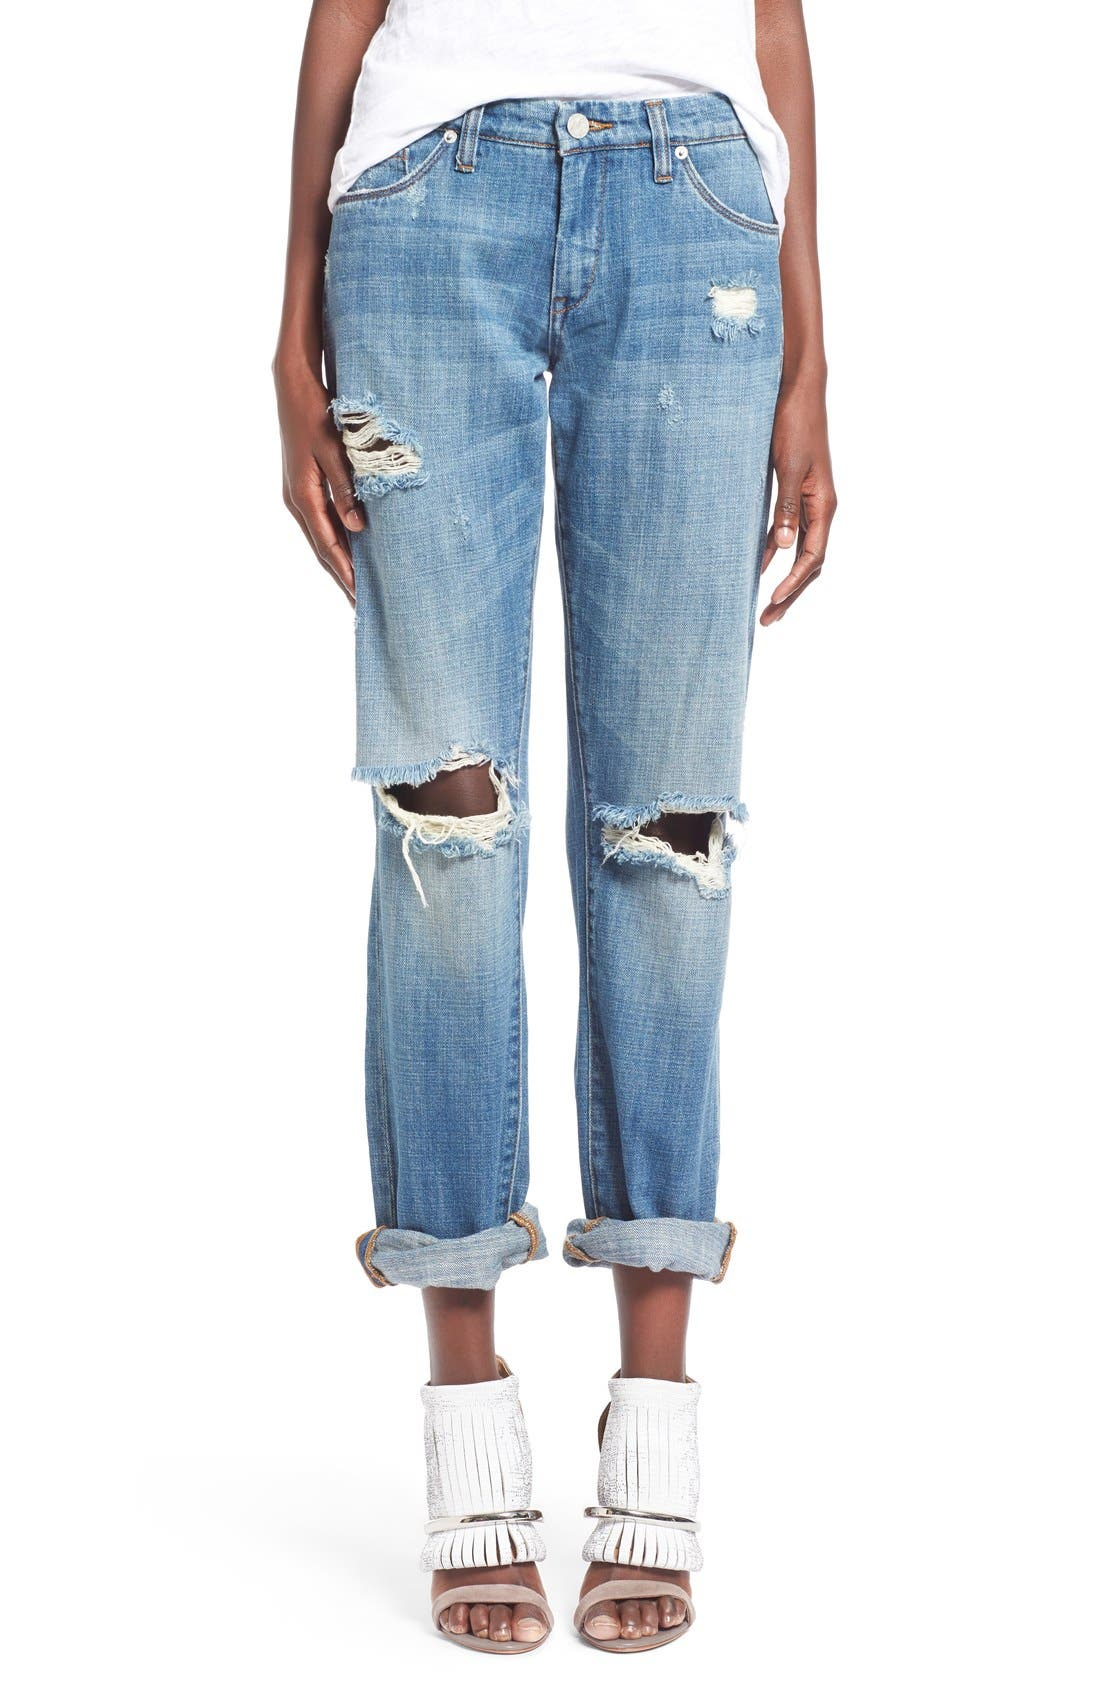 'Meant to Be' High Rise Distressed Boyfriend Jeans,                             Main thumbnail 1, color,                             Tomboy